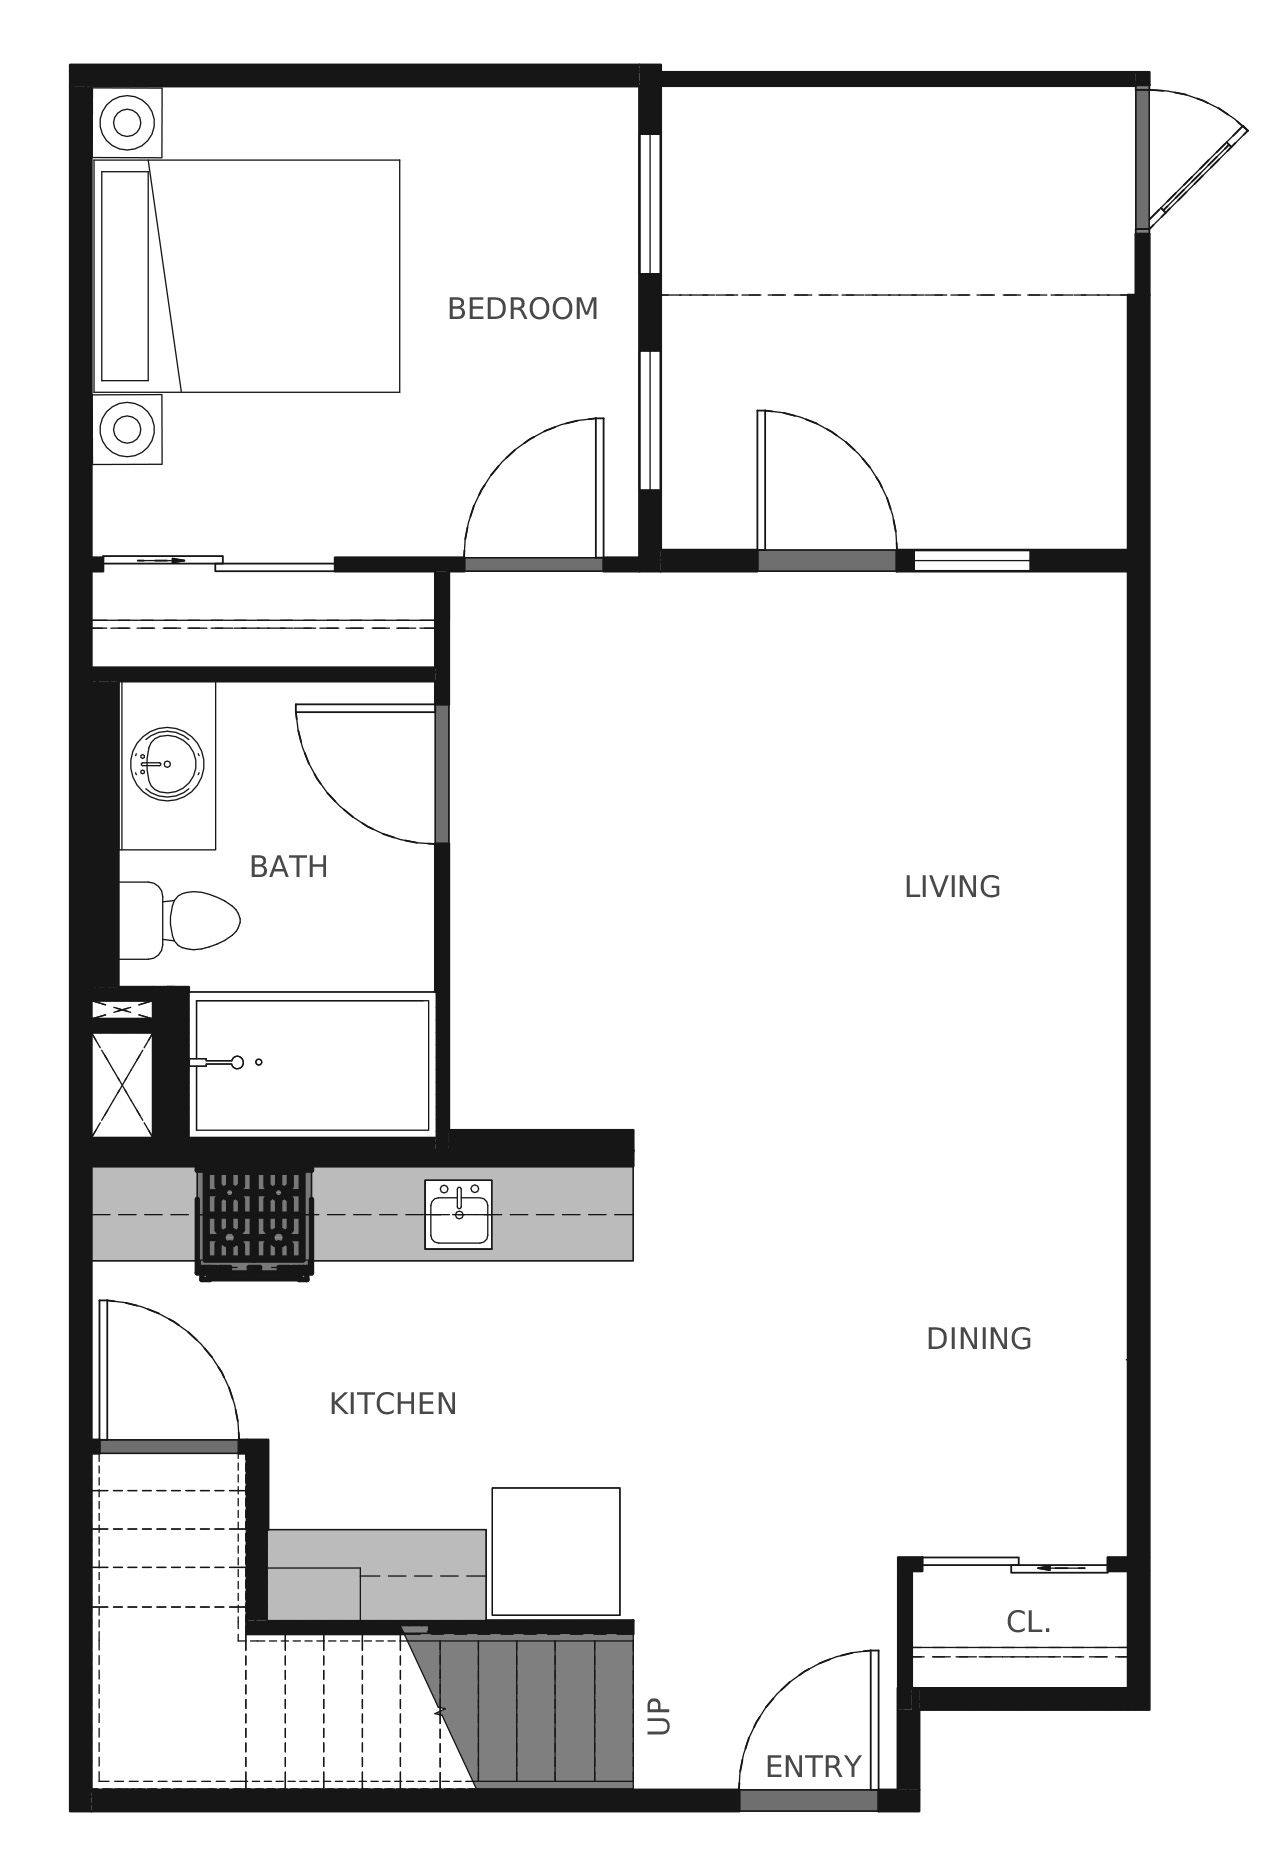 Plan C4a First Floor - 1,602 sq. ft.